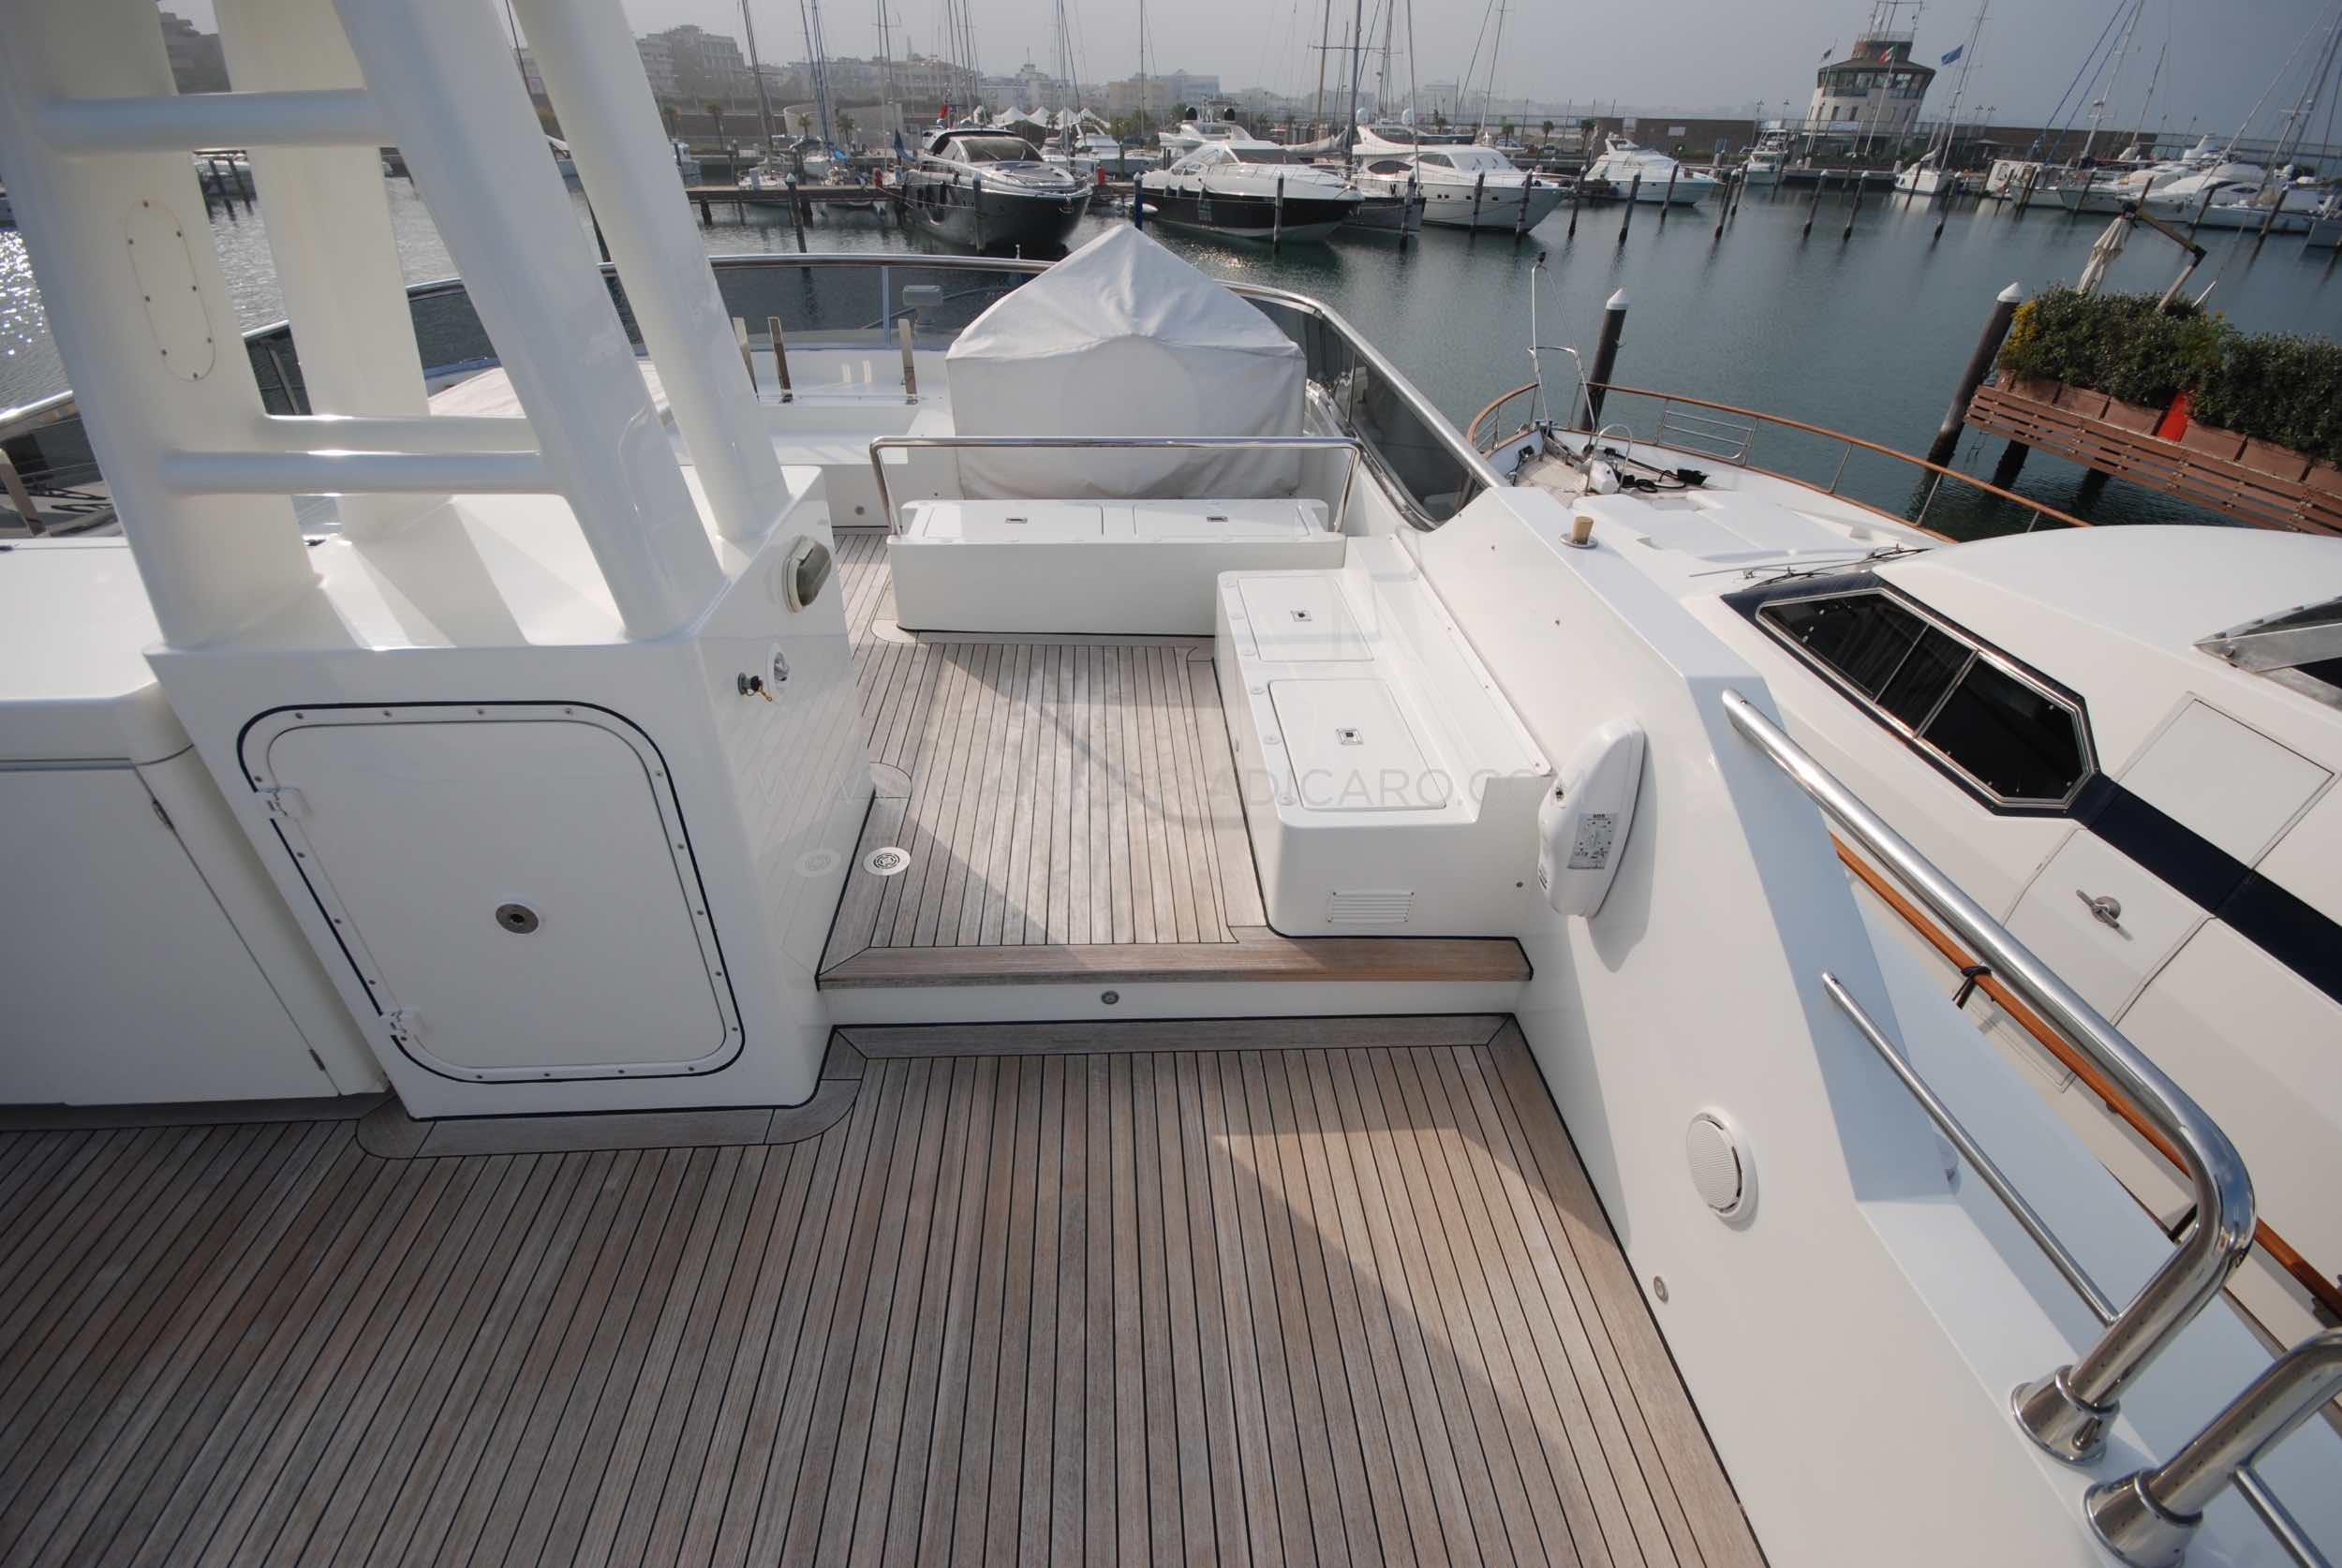 emys-yacht-22-unica-for-sale-90.jpg